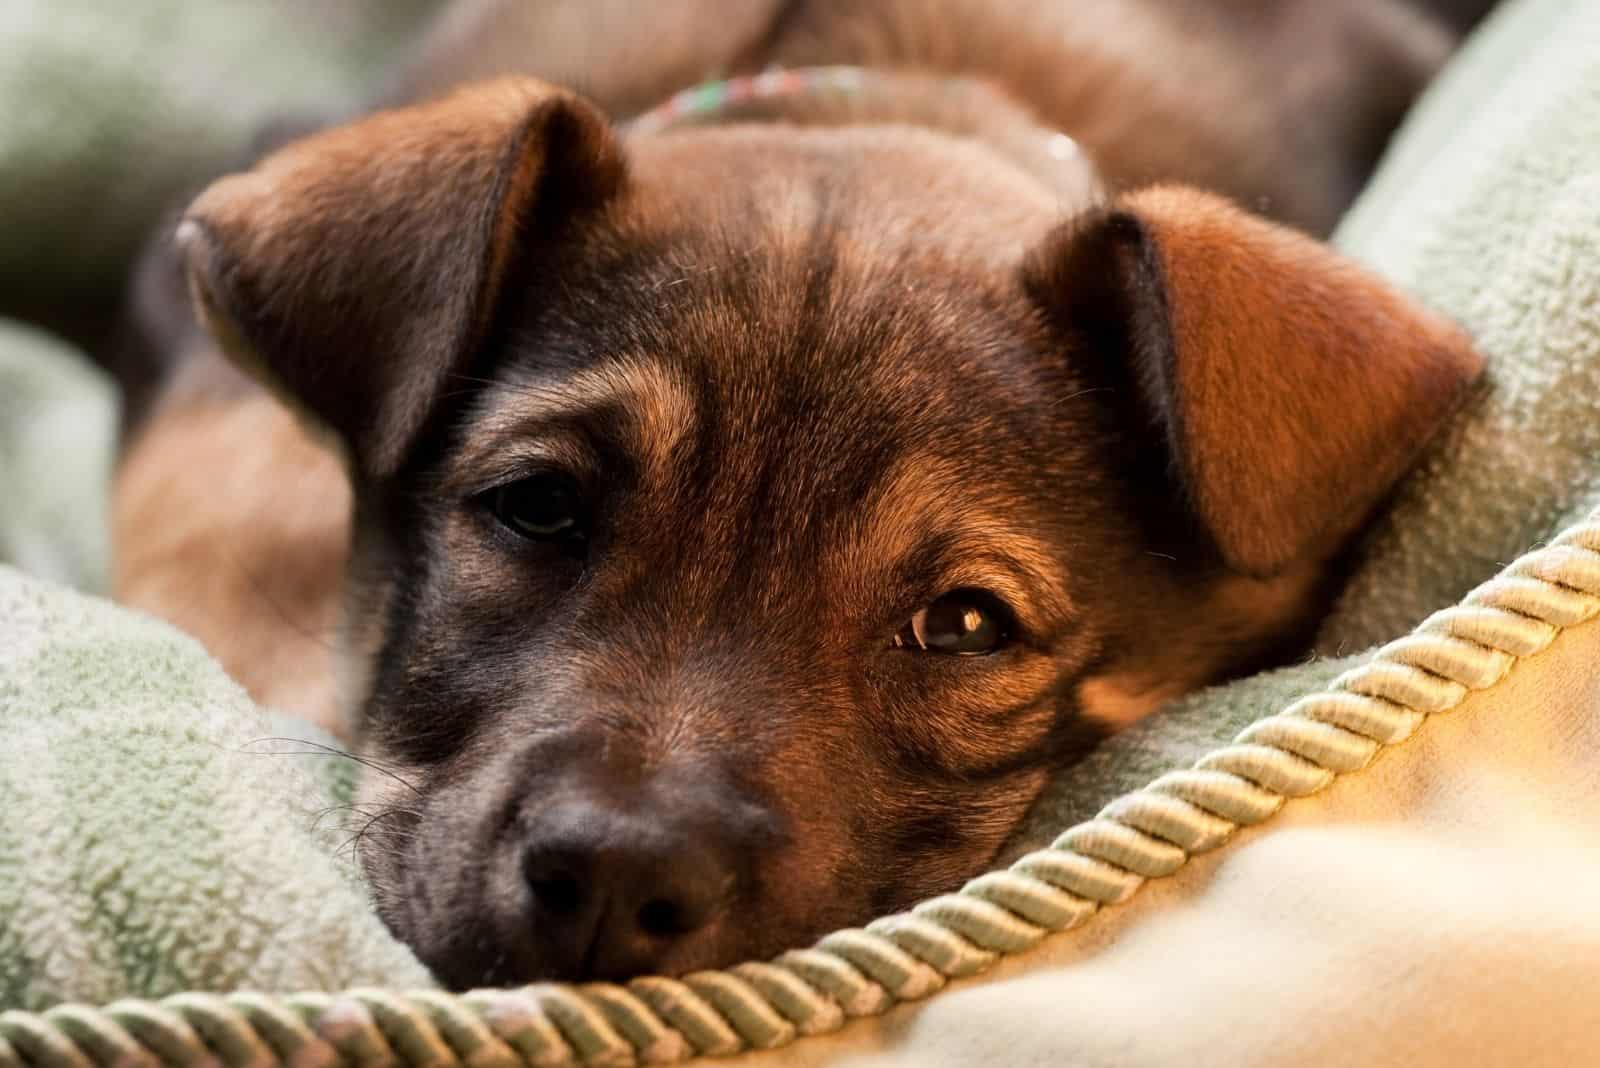 liver german shepherd puppy lying on a dog bed in focus photography